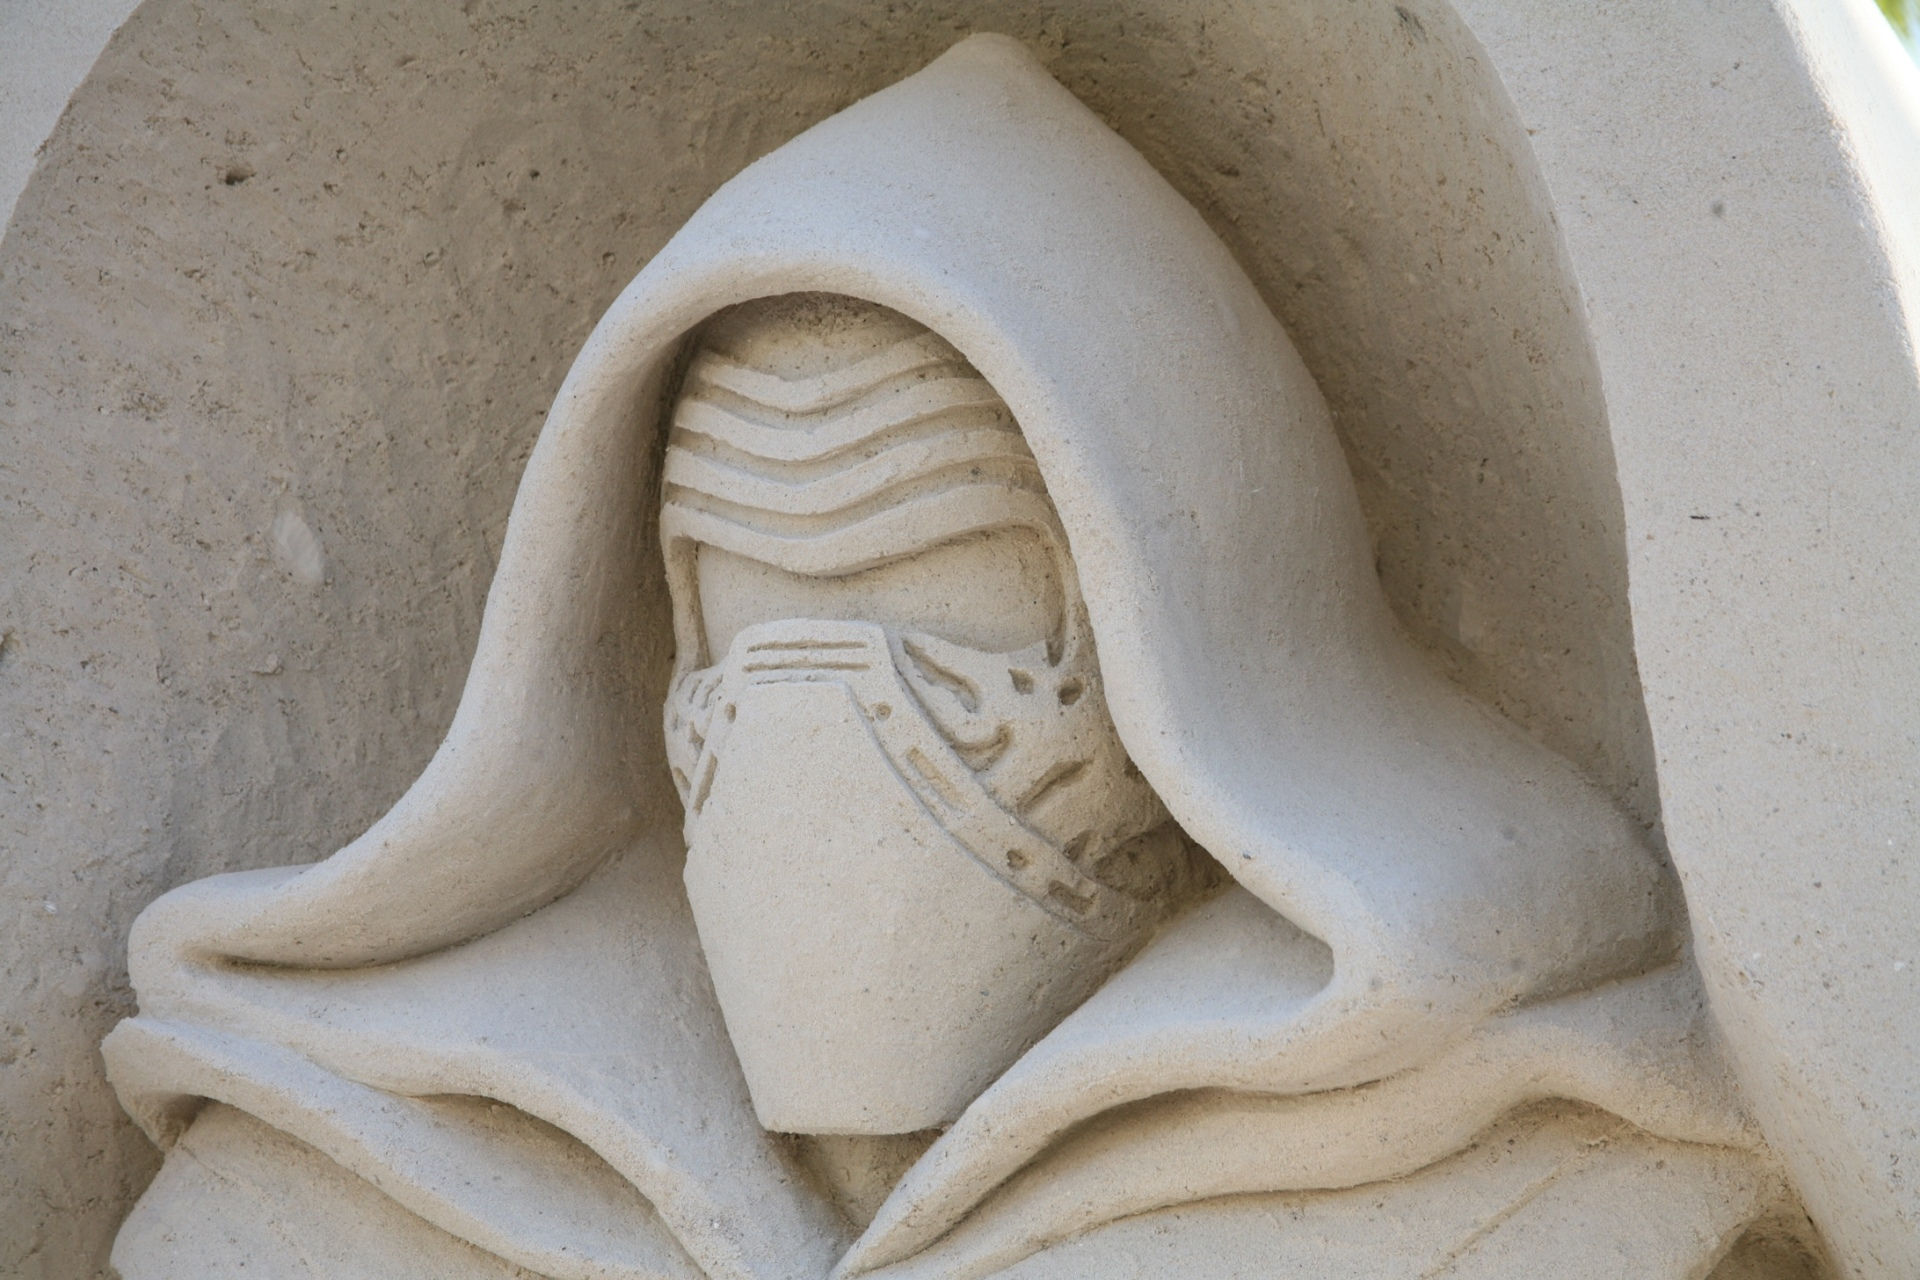 Key West sand sculpture by Rusty Croft